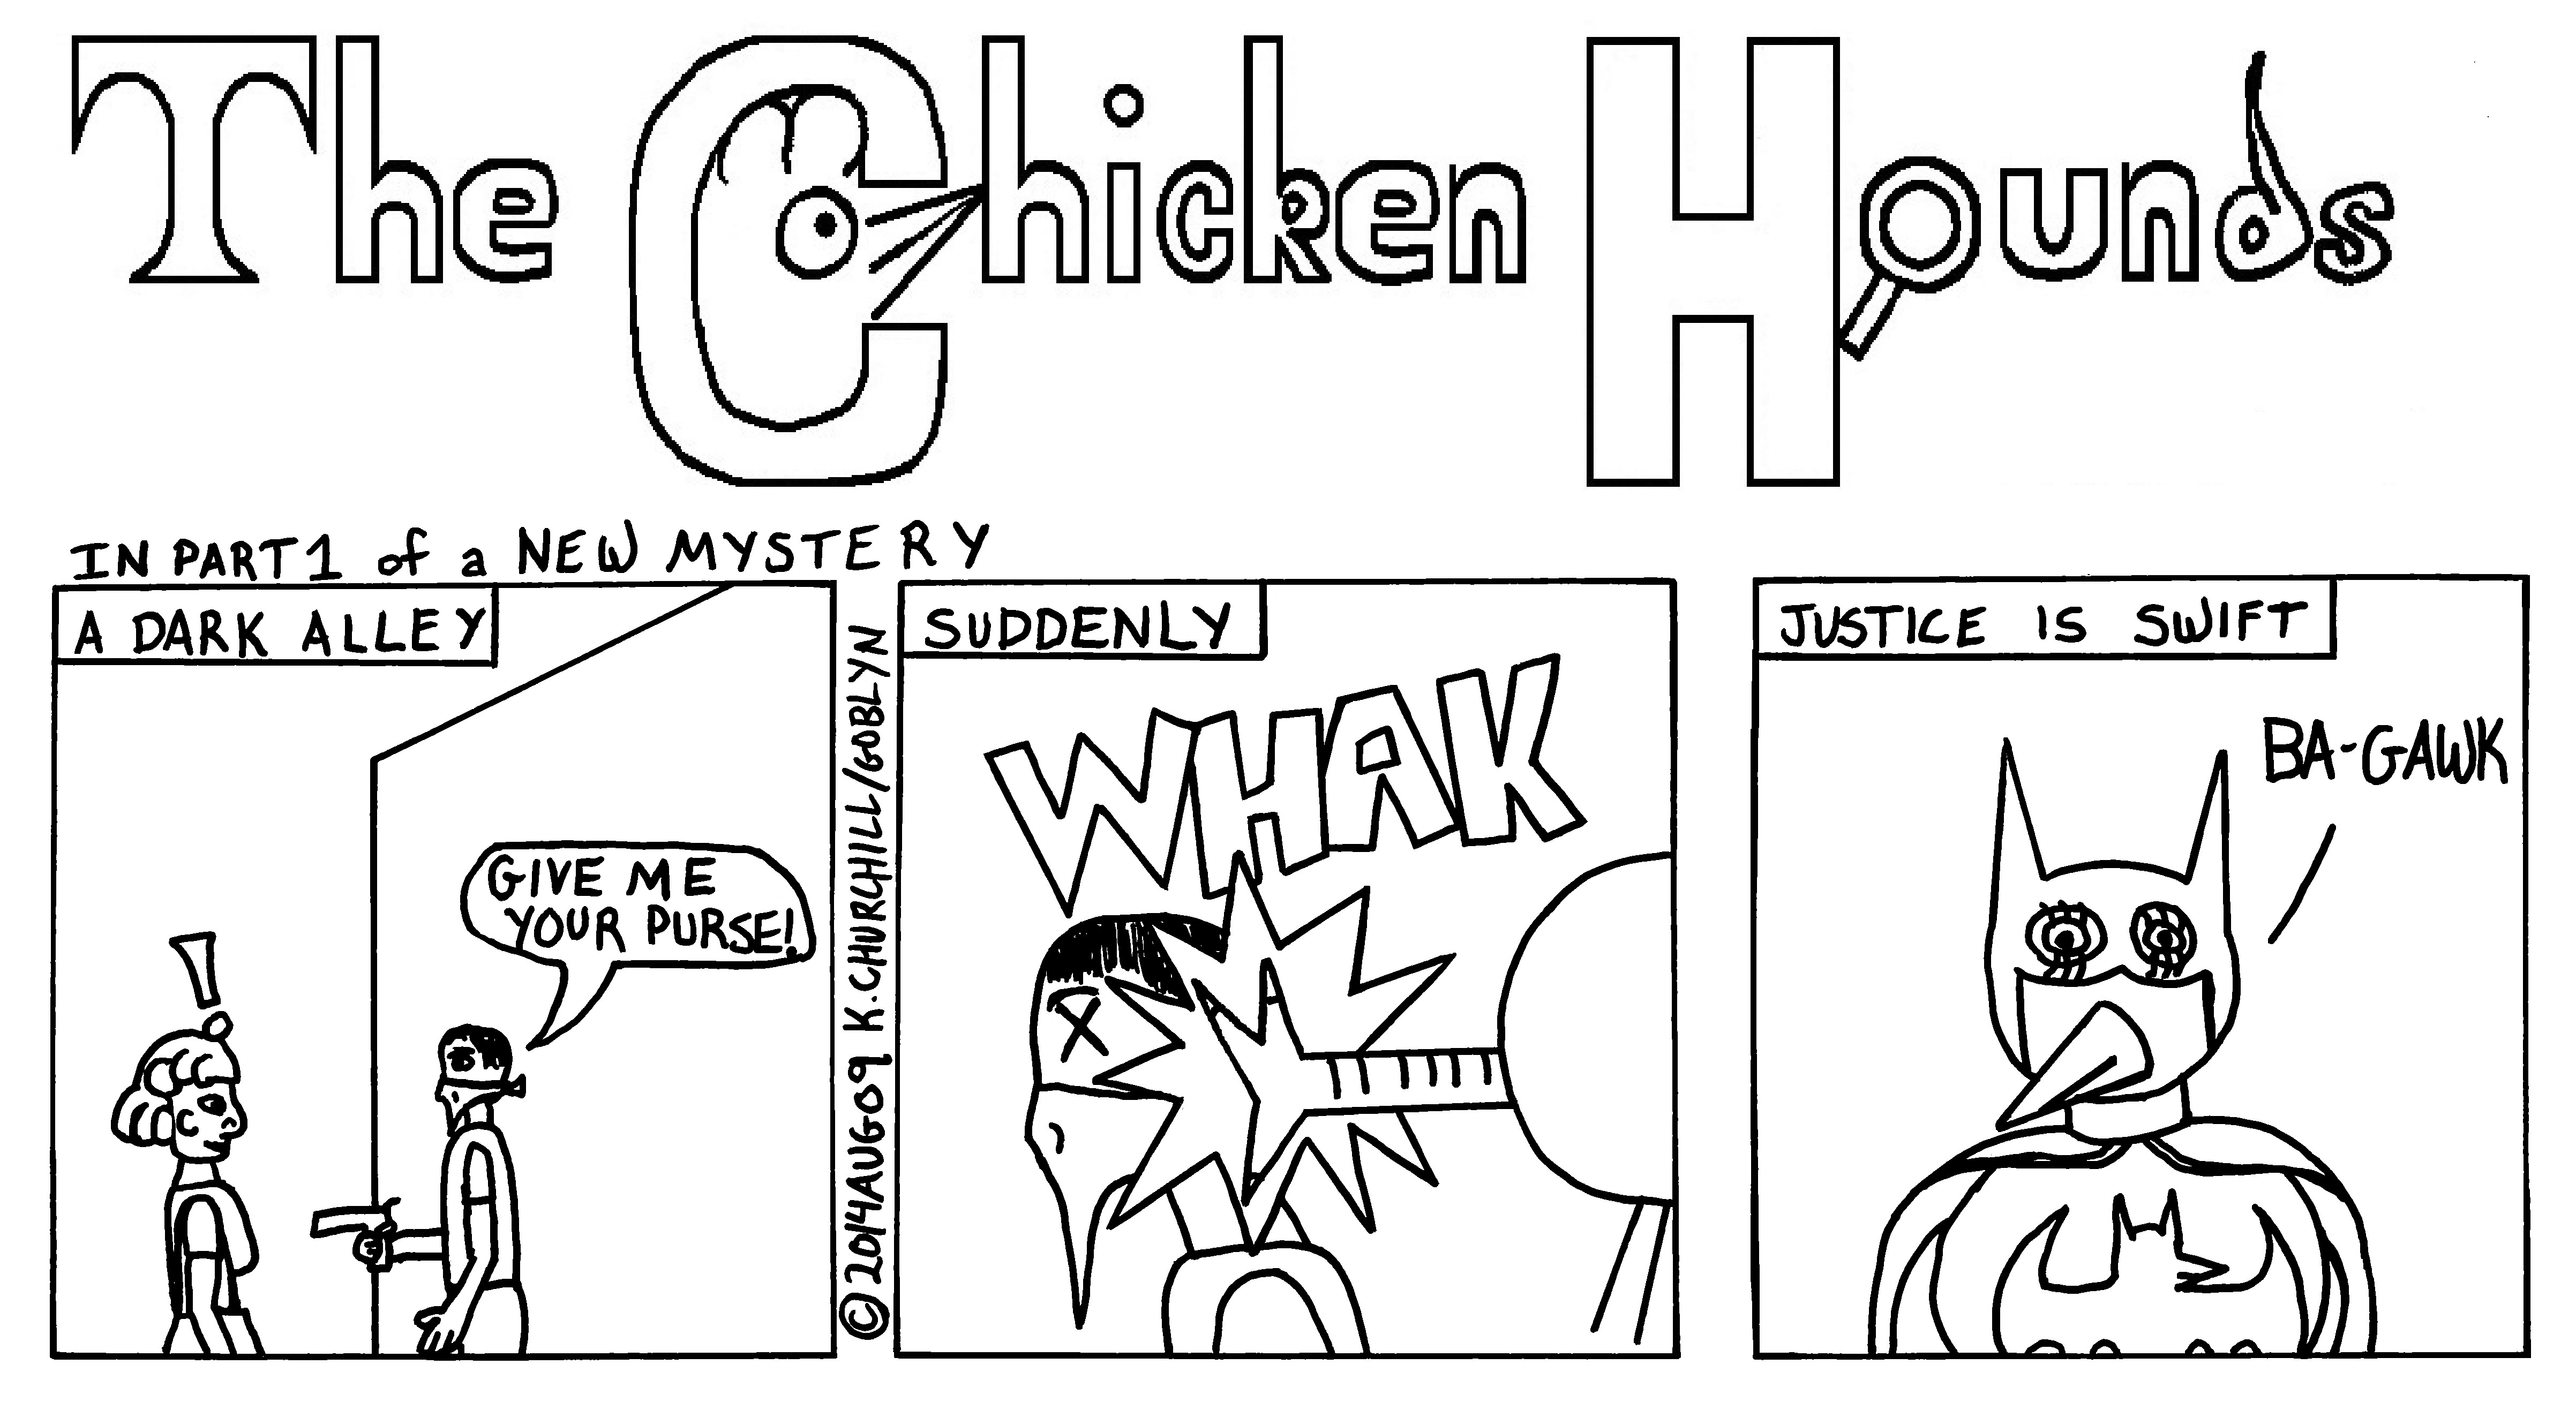 "The Chicken Hounds in the Mystery of ""Who is Bat-Chick?"""